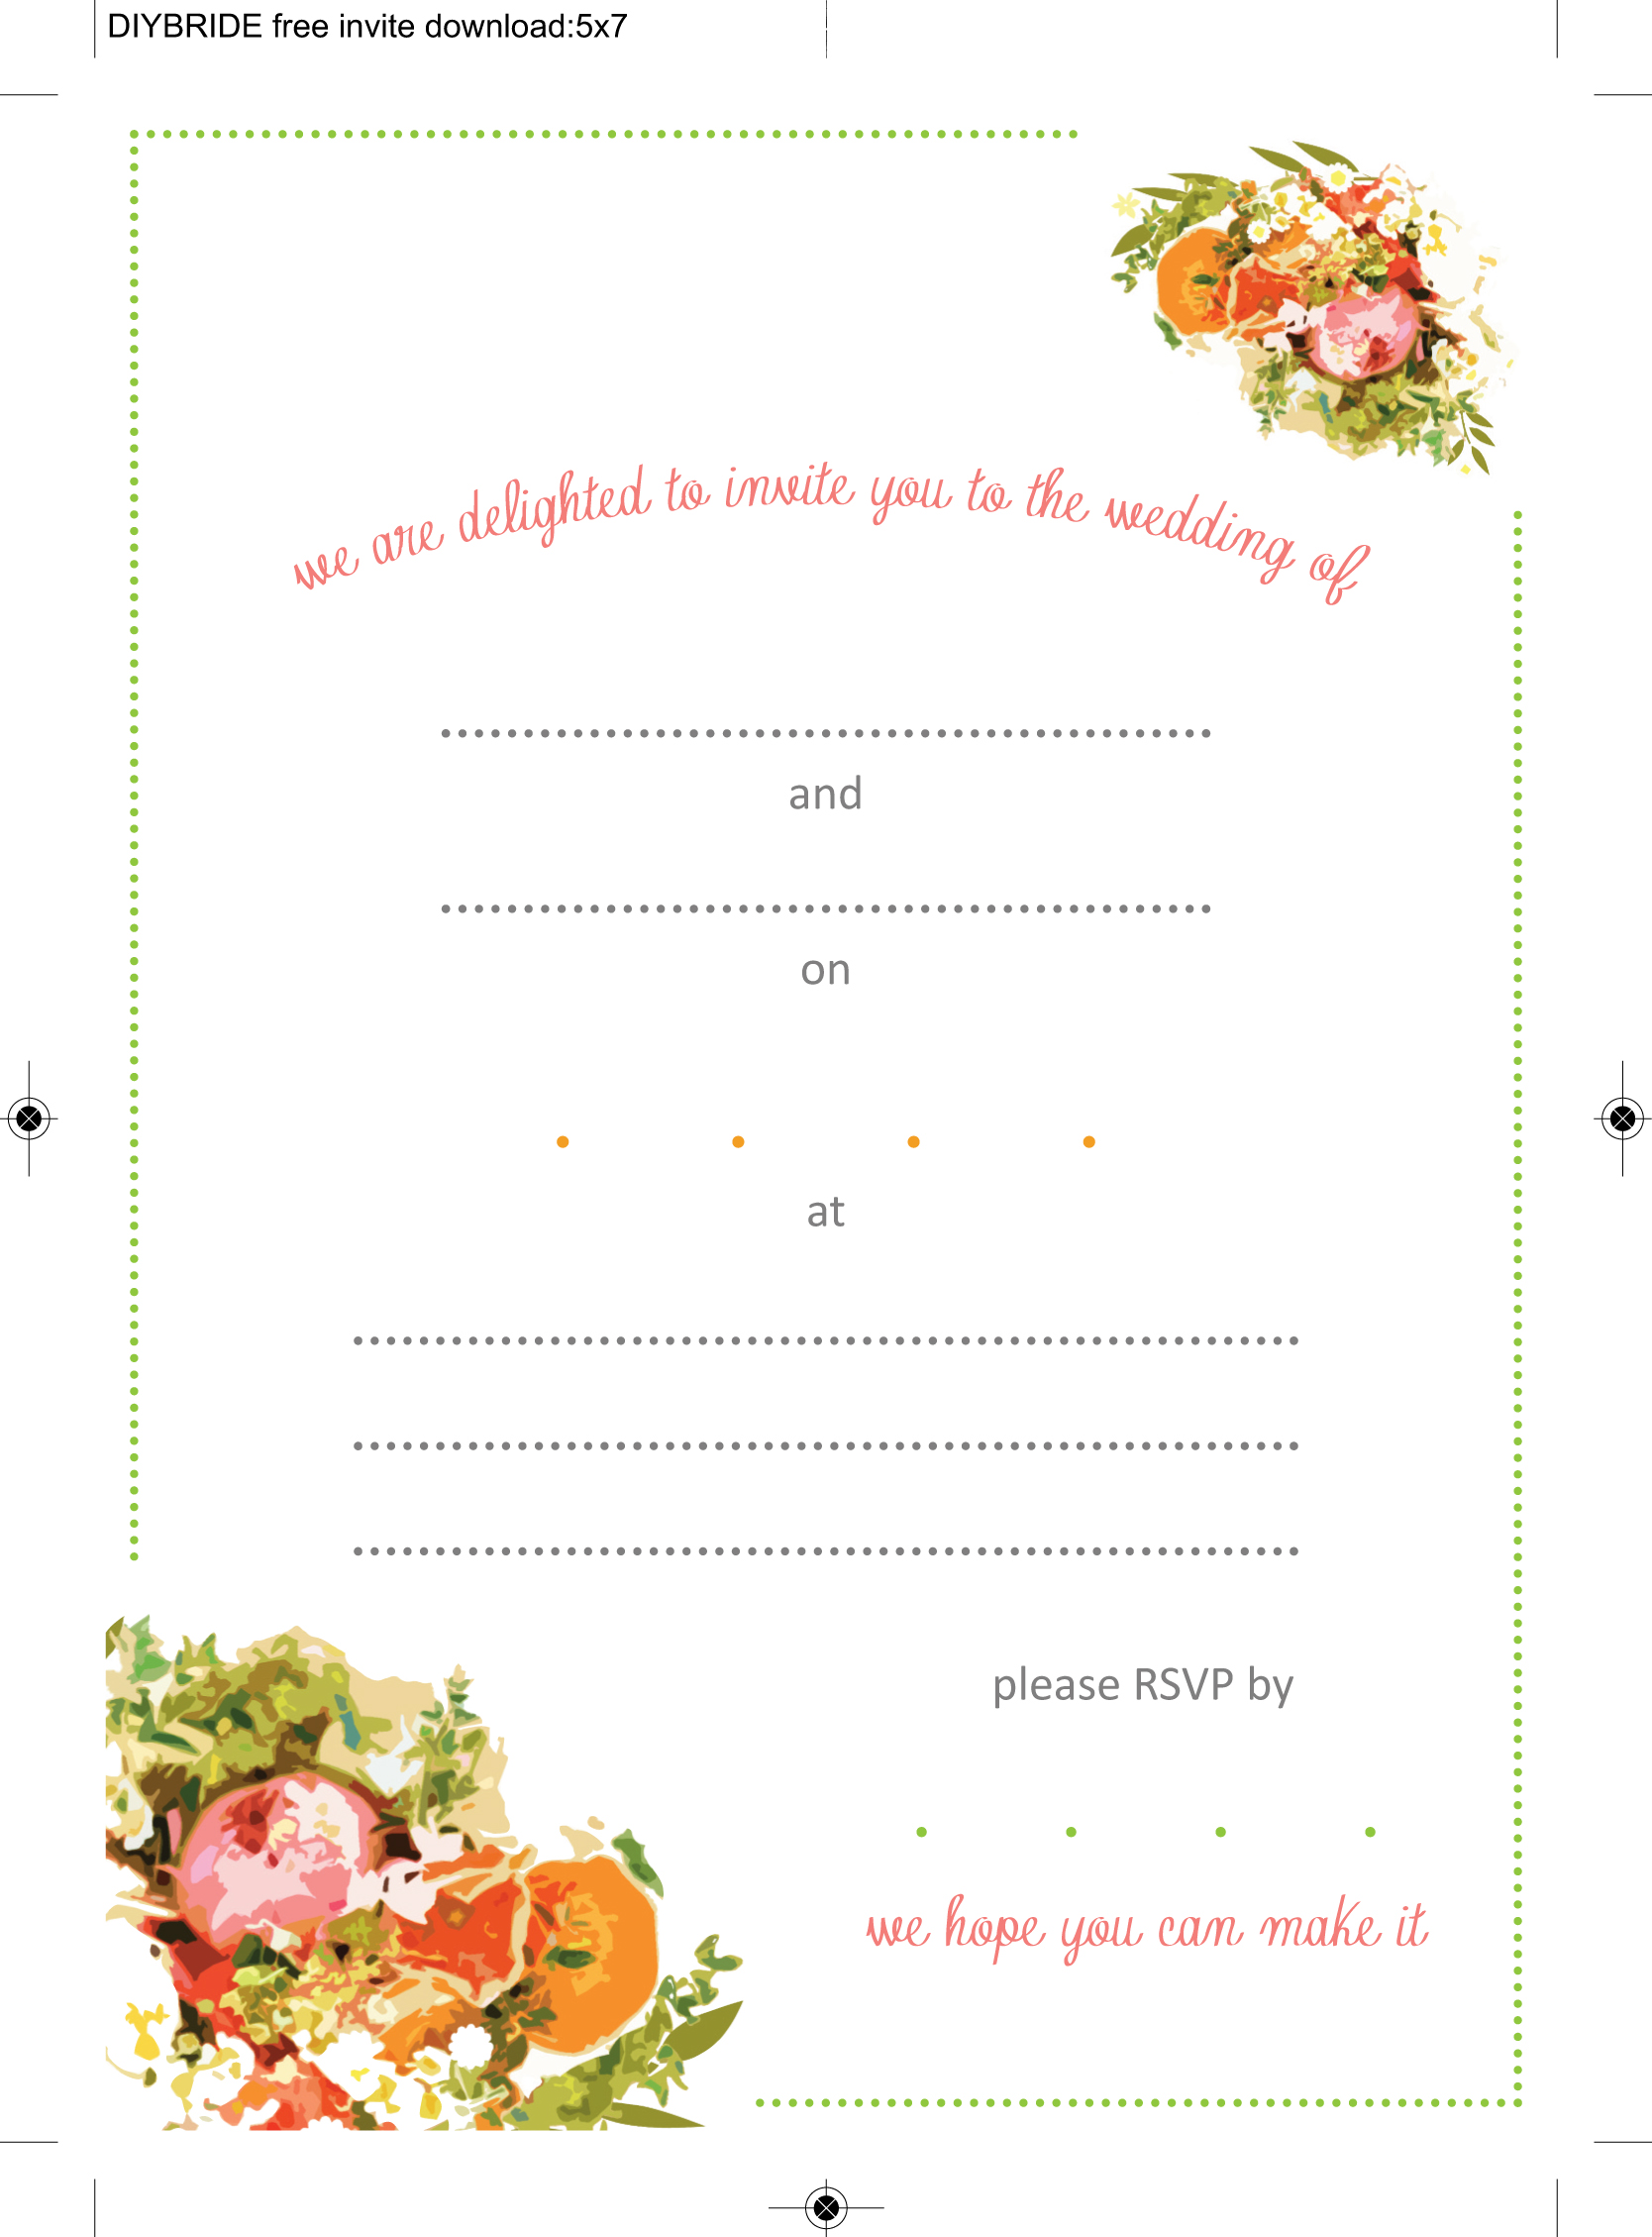 Wedding Invitation Templates That Are Cute And Easy to Make – Free Templates for Invitation Cards